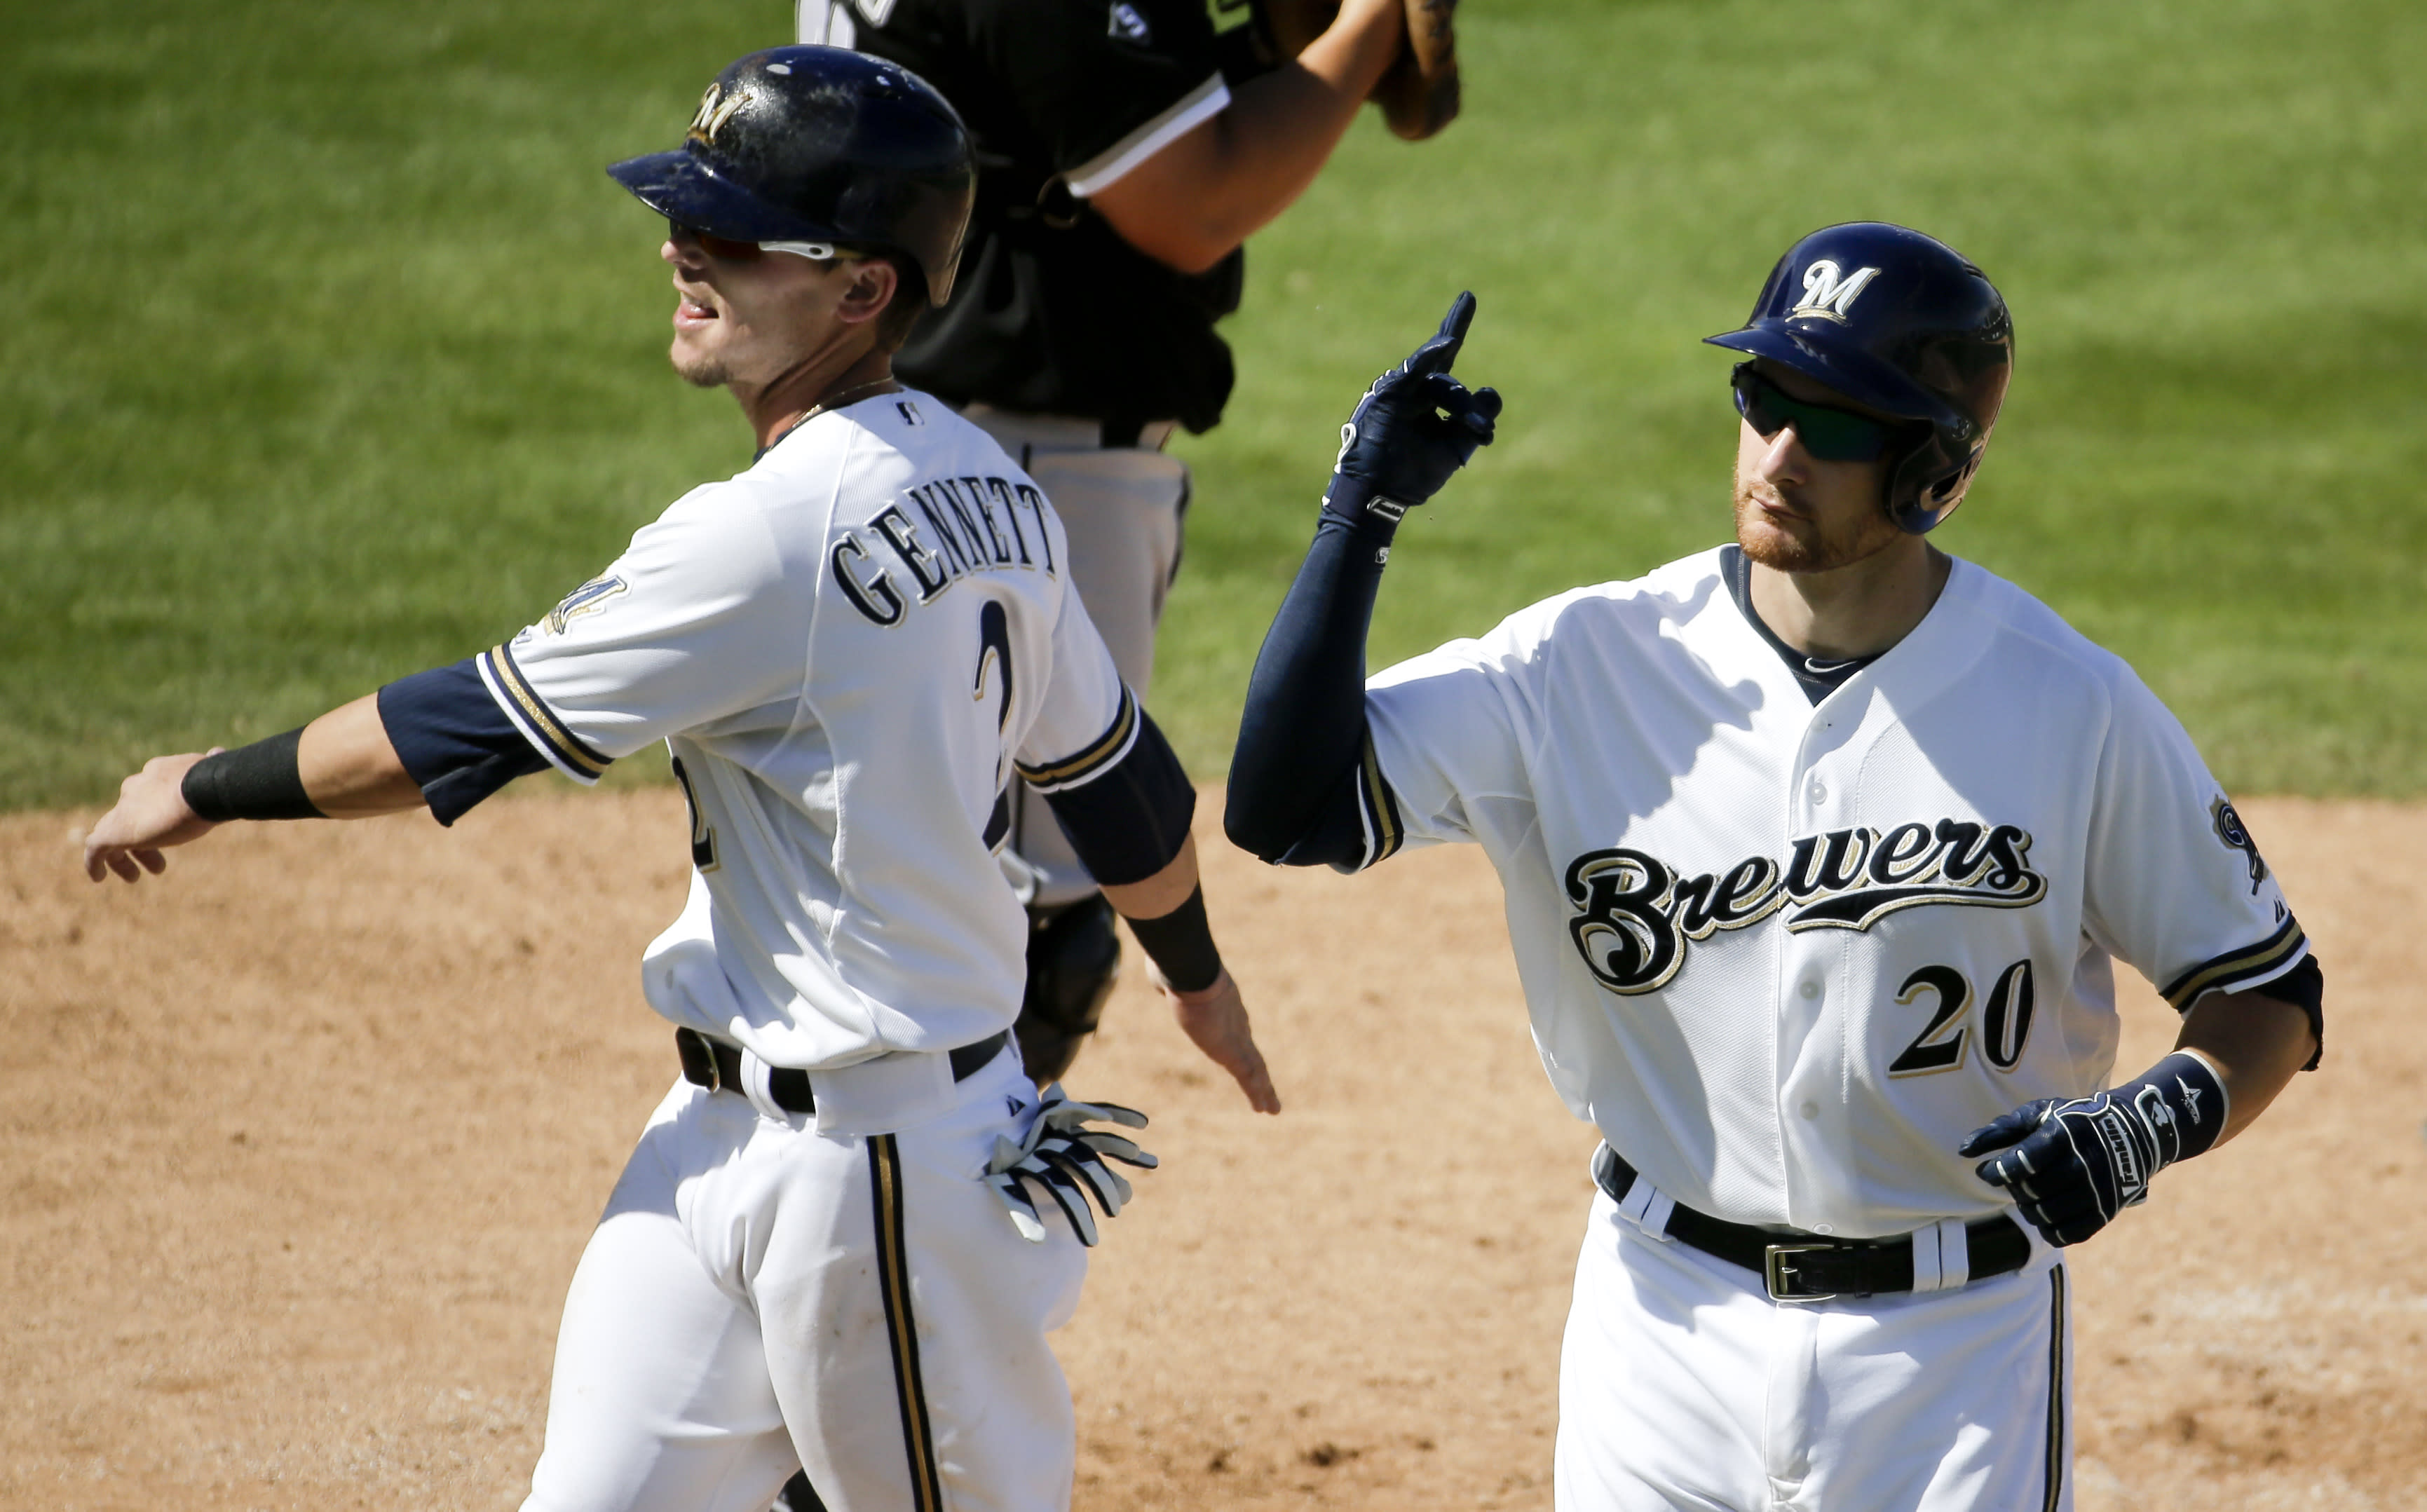 Brewers look for consistency in batter's box in 2015